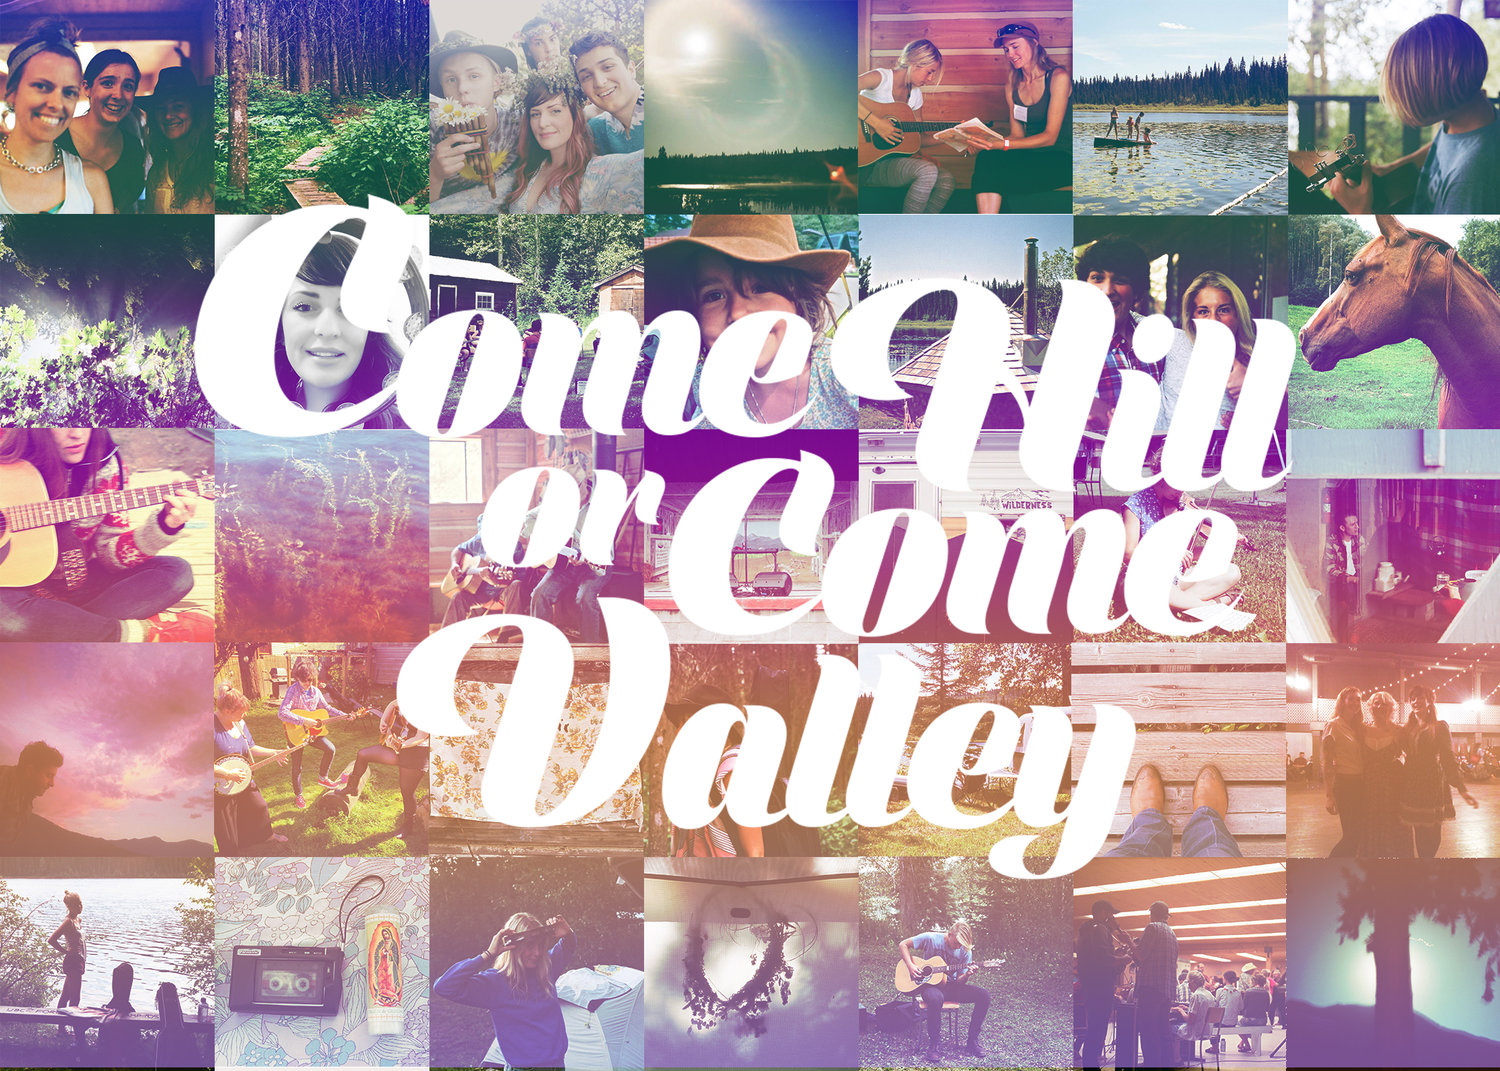 Come Hill or Come Valley